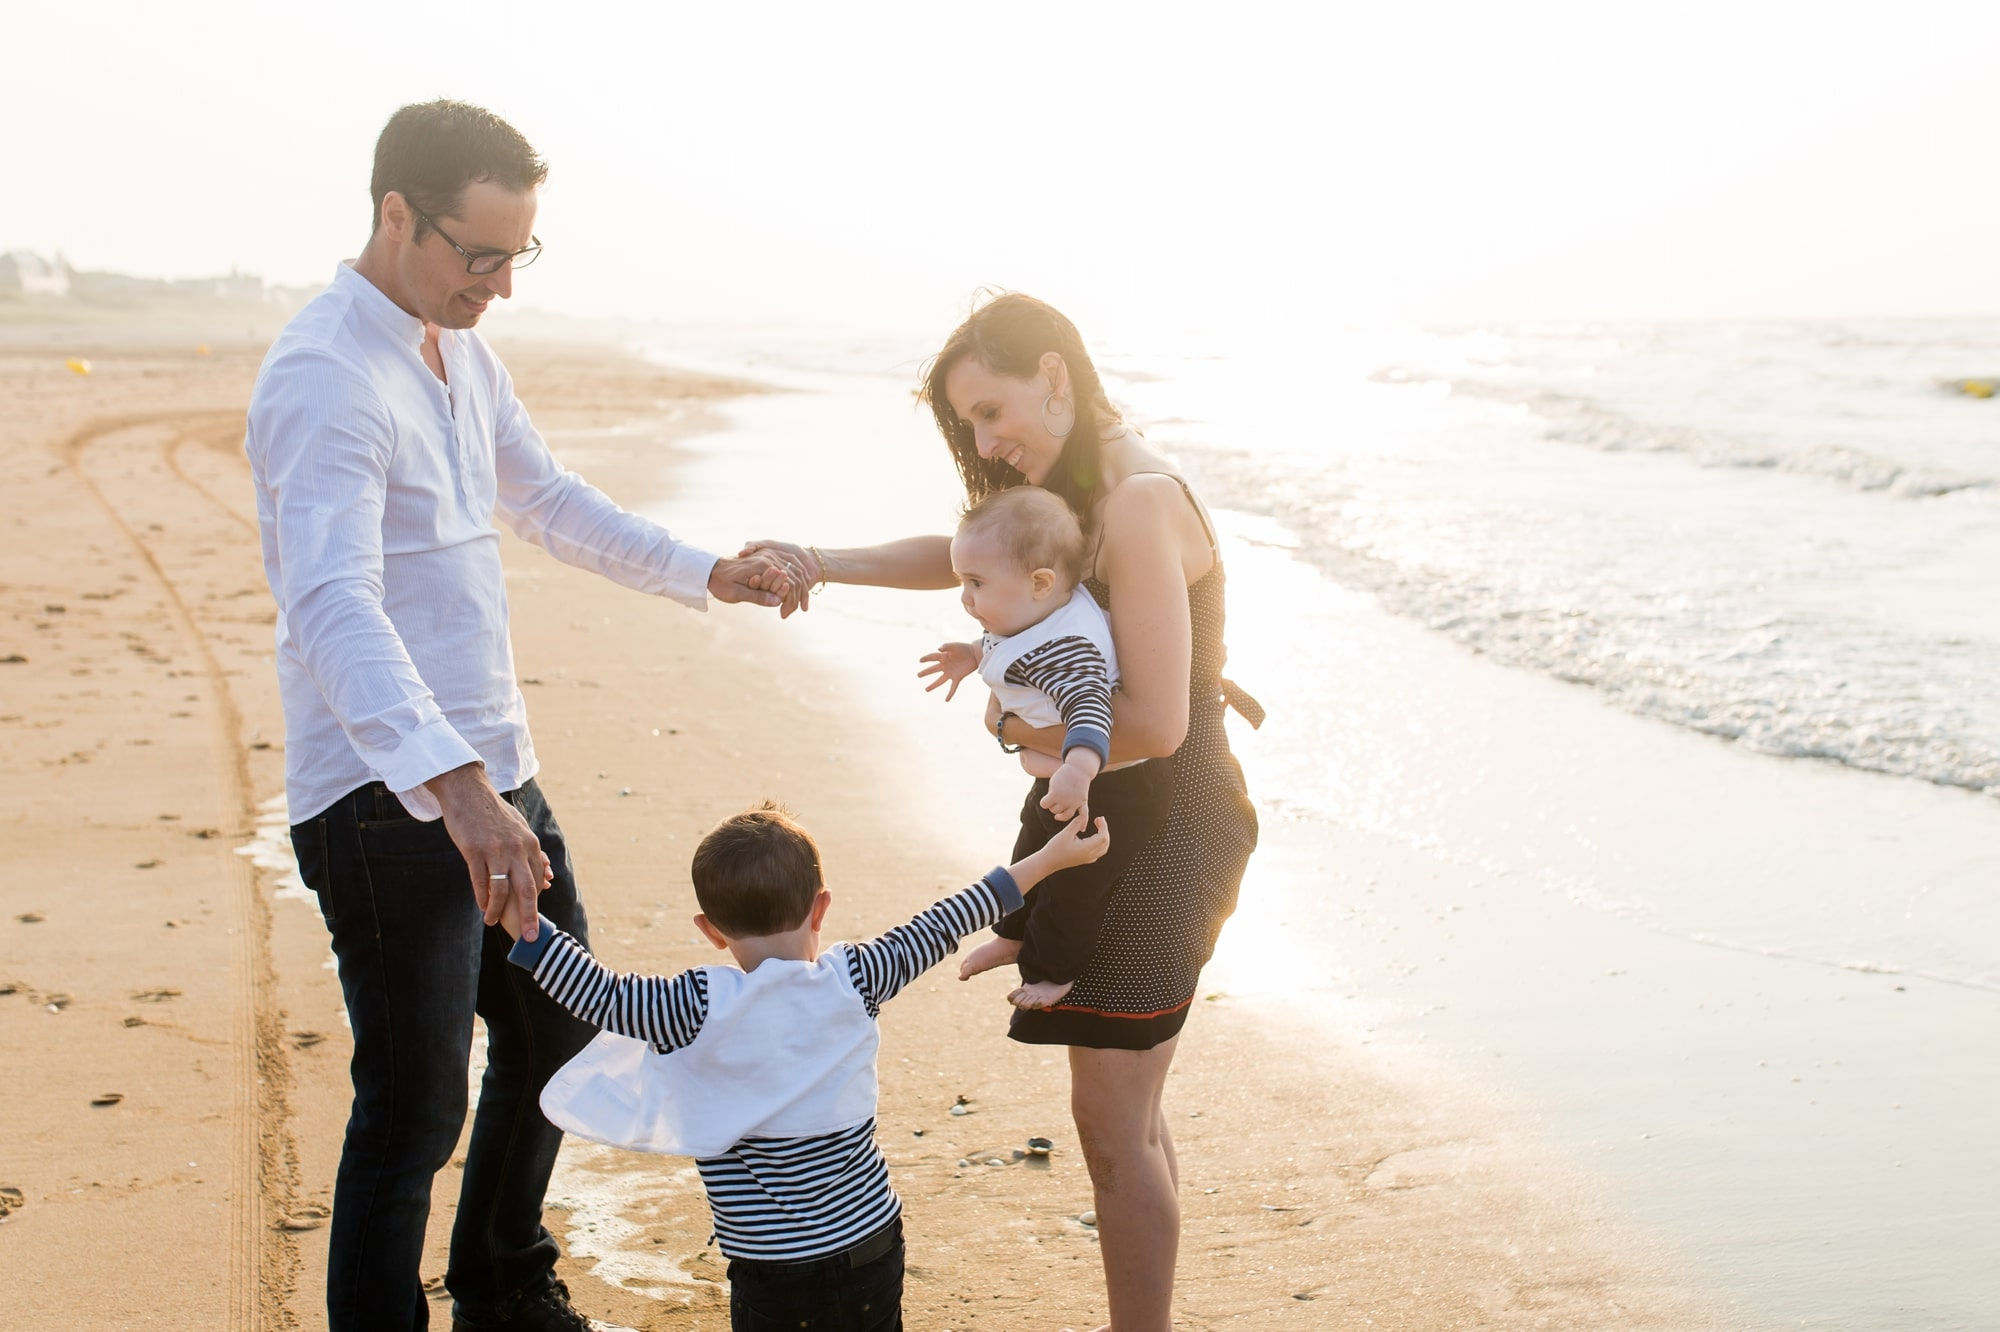 séance famille cabourg basse normandie photographe shooting lifestyle-17